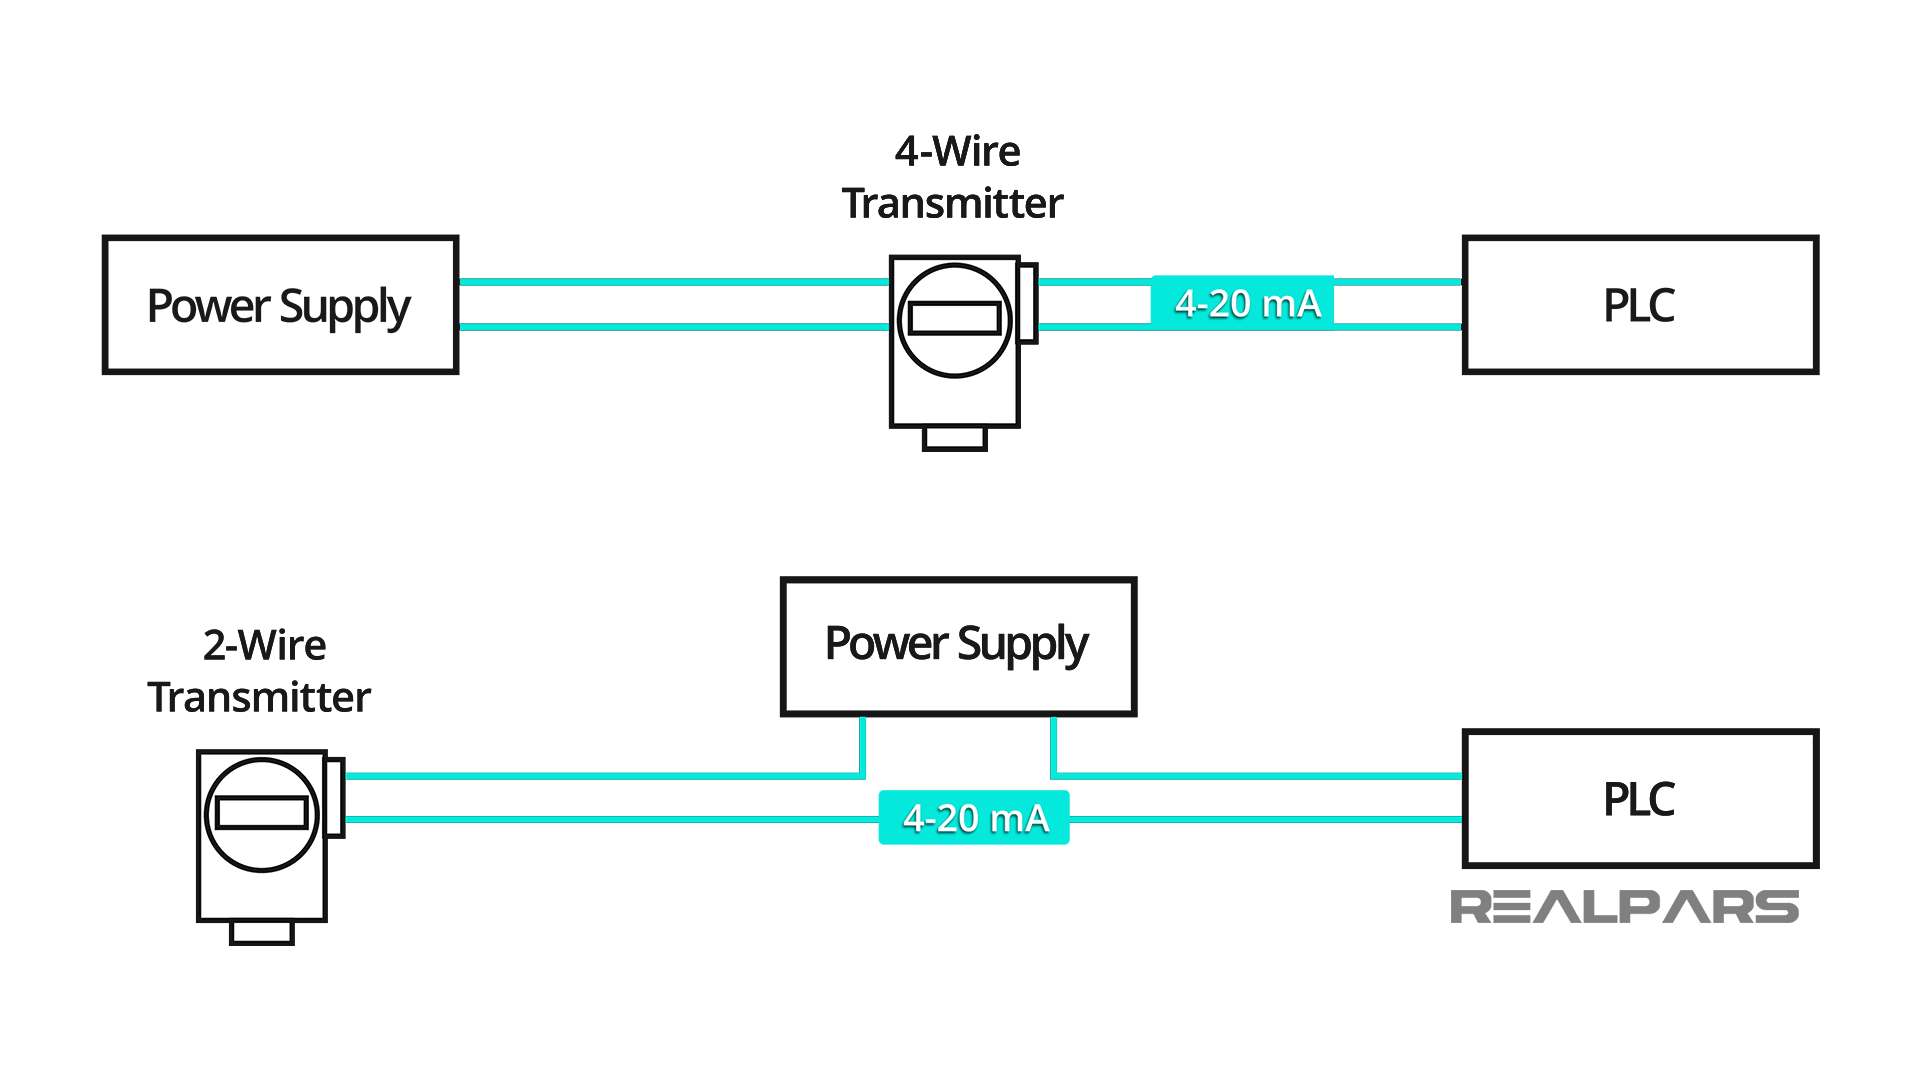 2-Wire and 4-Wire Transmitter